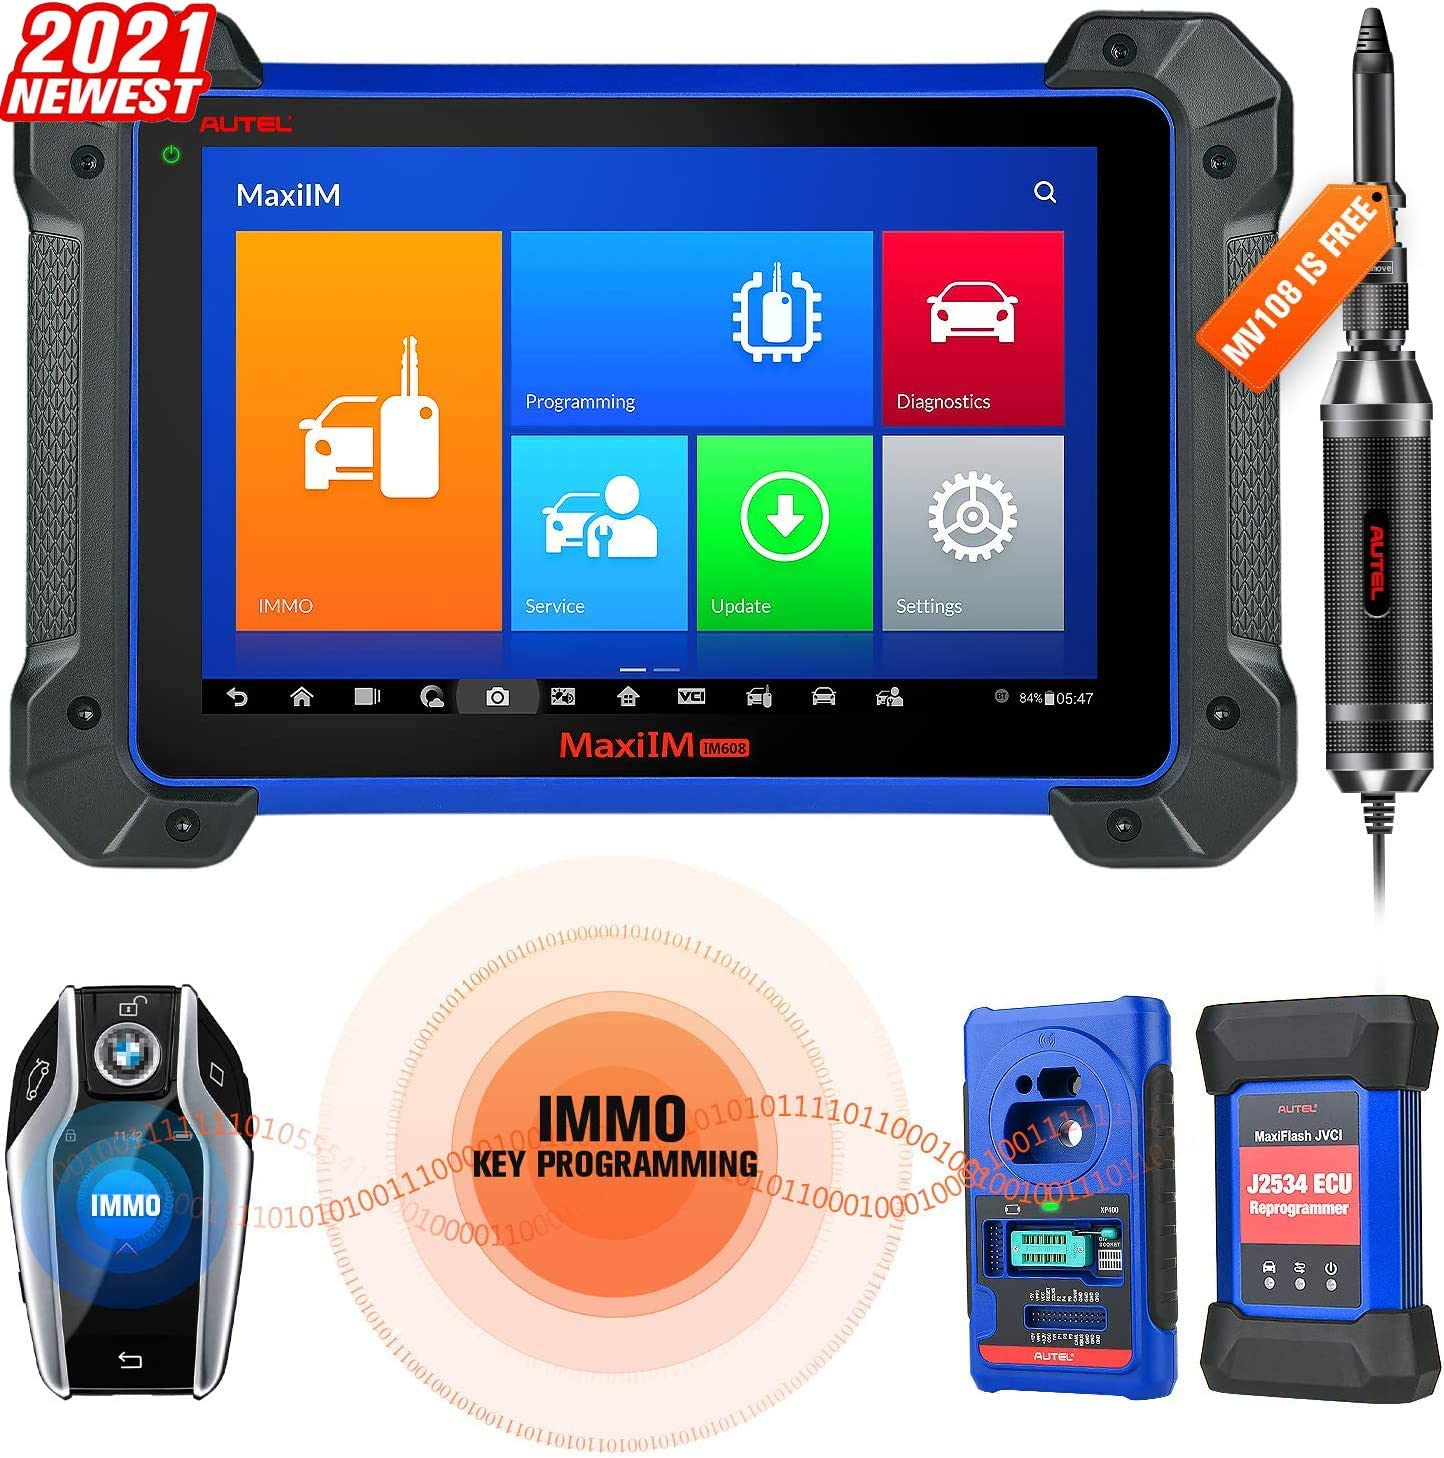 Amazon.com: Autel MaxiIM IM608 [with MV108 Scope] Key Programming Tool 2021  Newest No IP Restriction with IMMO and Key Programmer XP400, J2534  Reprogrammer, Bi-Directional Diagnostic Scanner All Systems Diagnosis:  Automotive